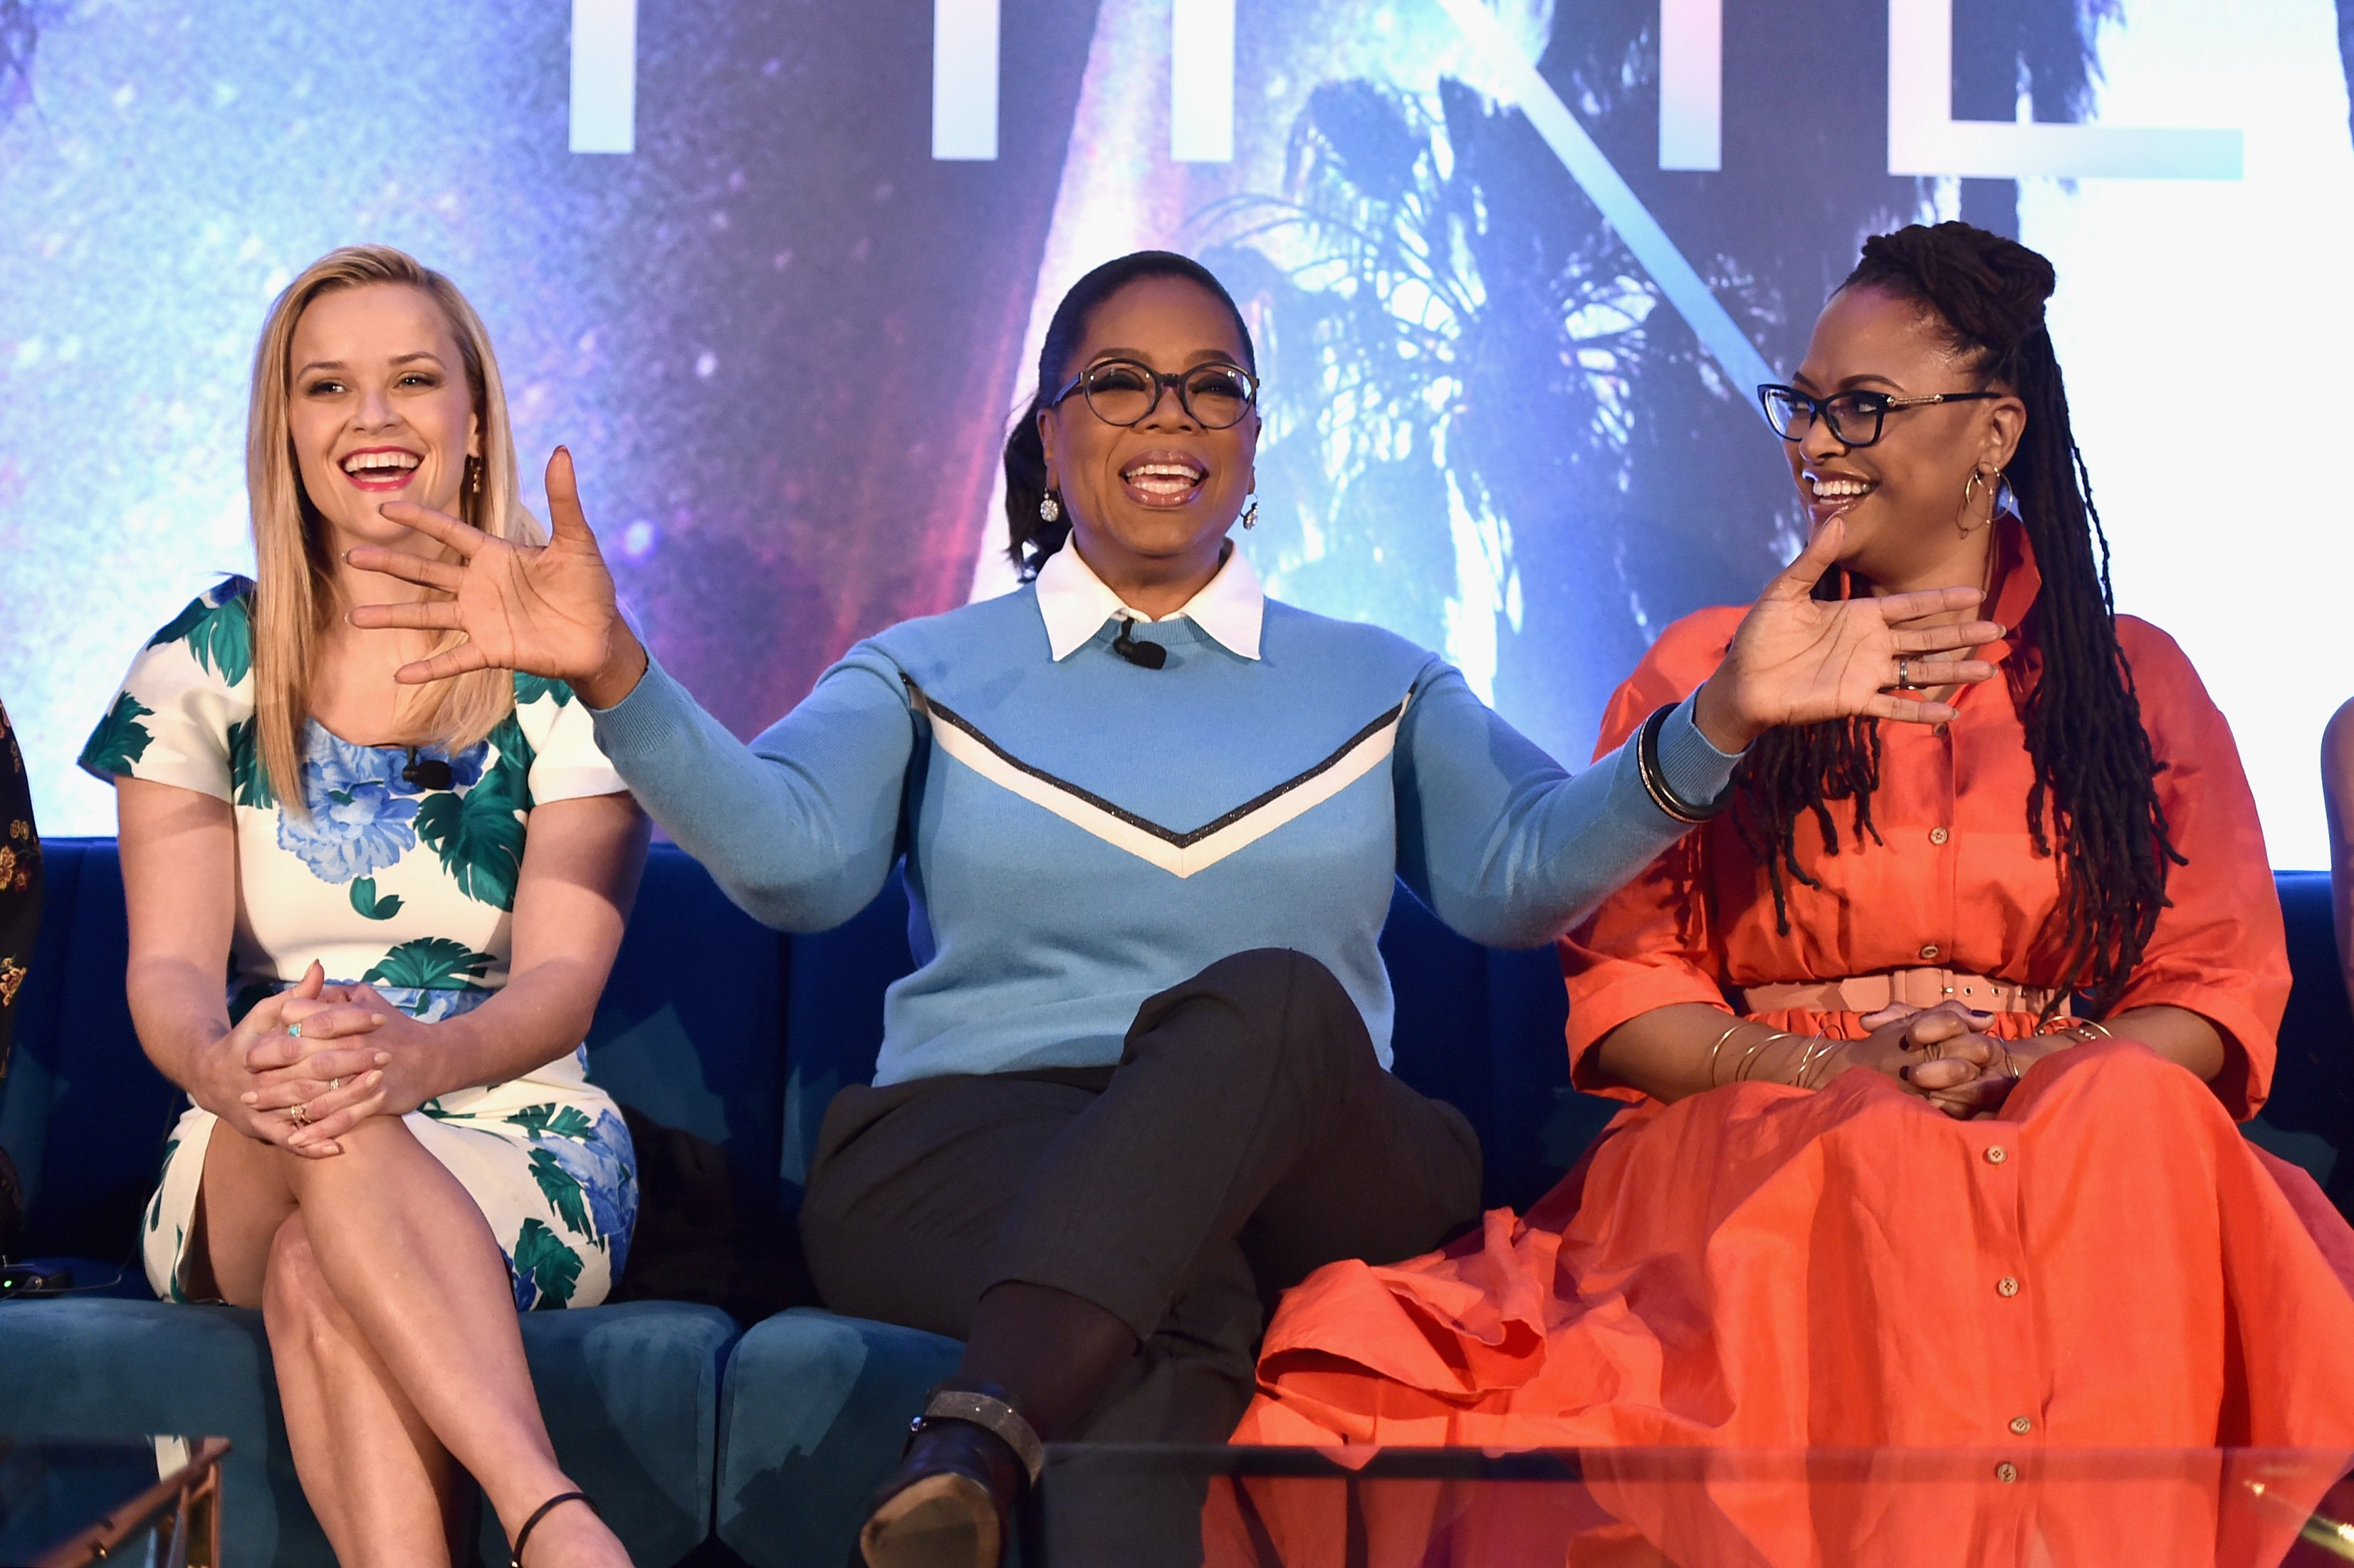 These6 Epic Empowerment Quotes from the A Wrinkle in Time Cast are must reads!